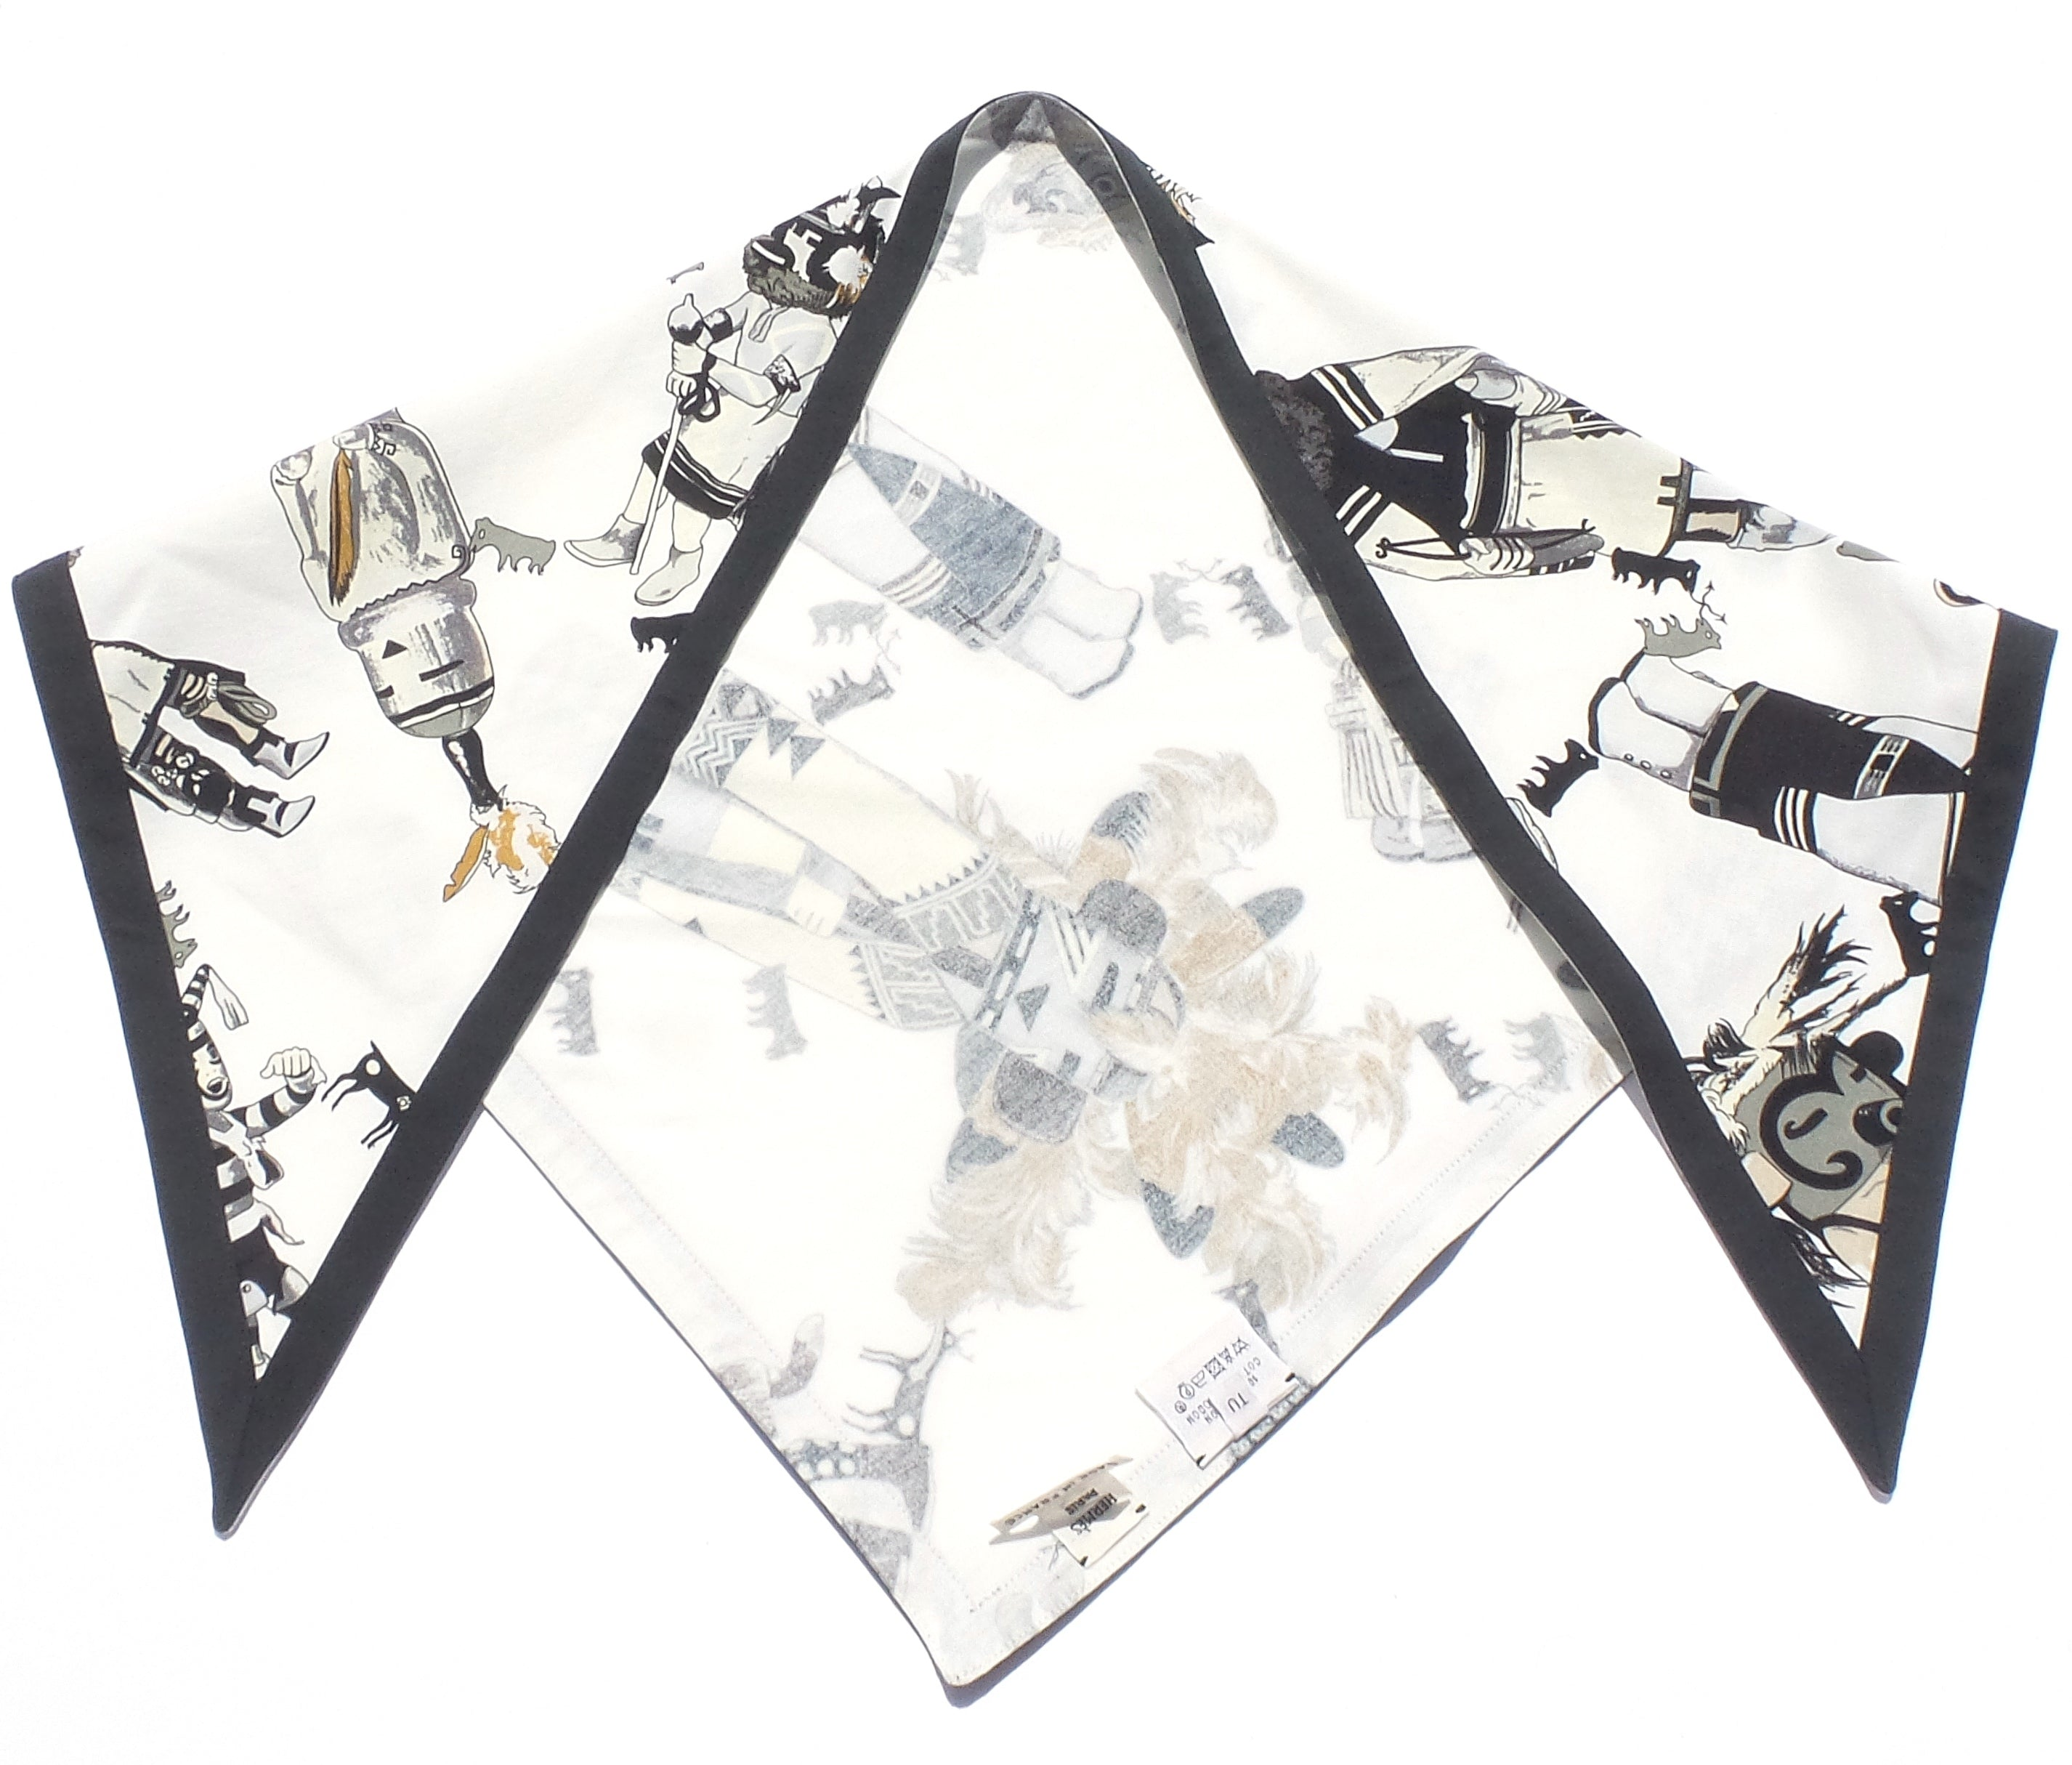 'Sold' HERMES Kachinas Hopi Indian Dolls White Black Cotton Triangle Scarf K Oliver GUC